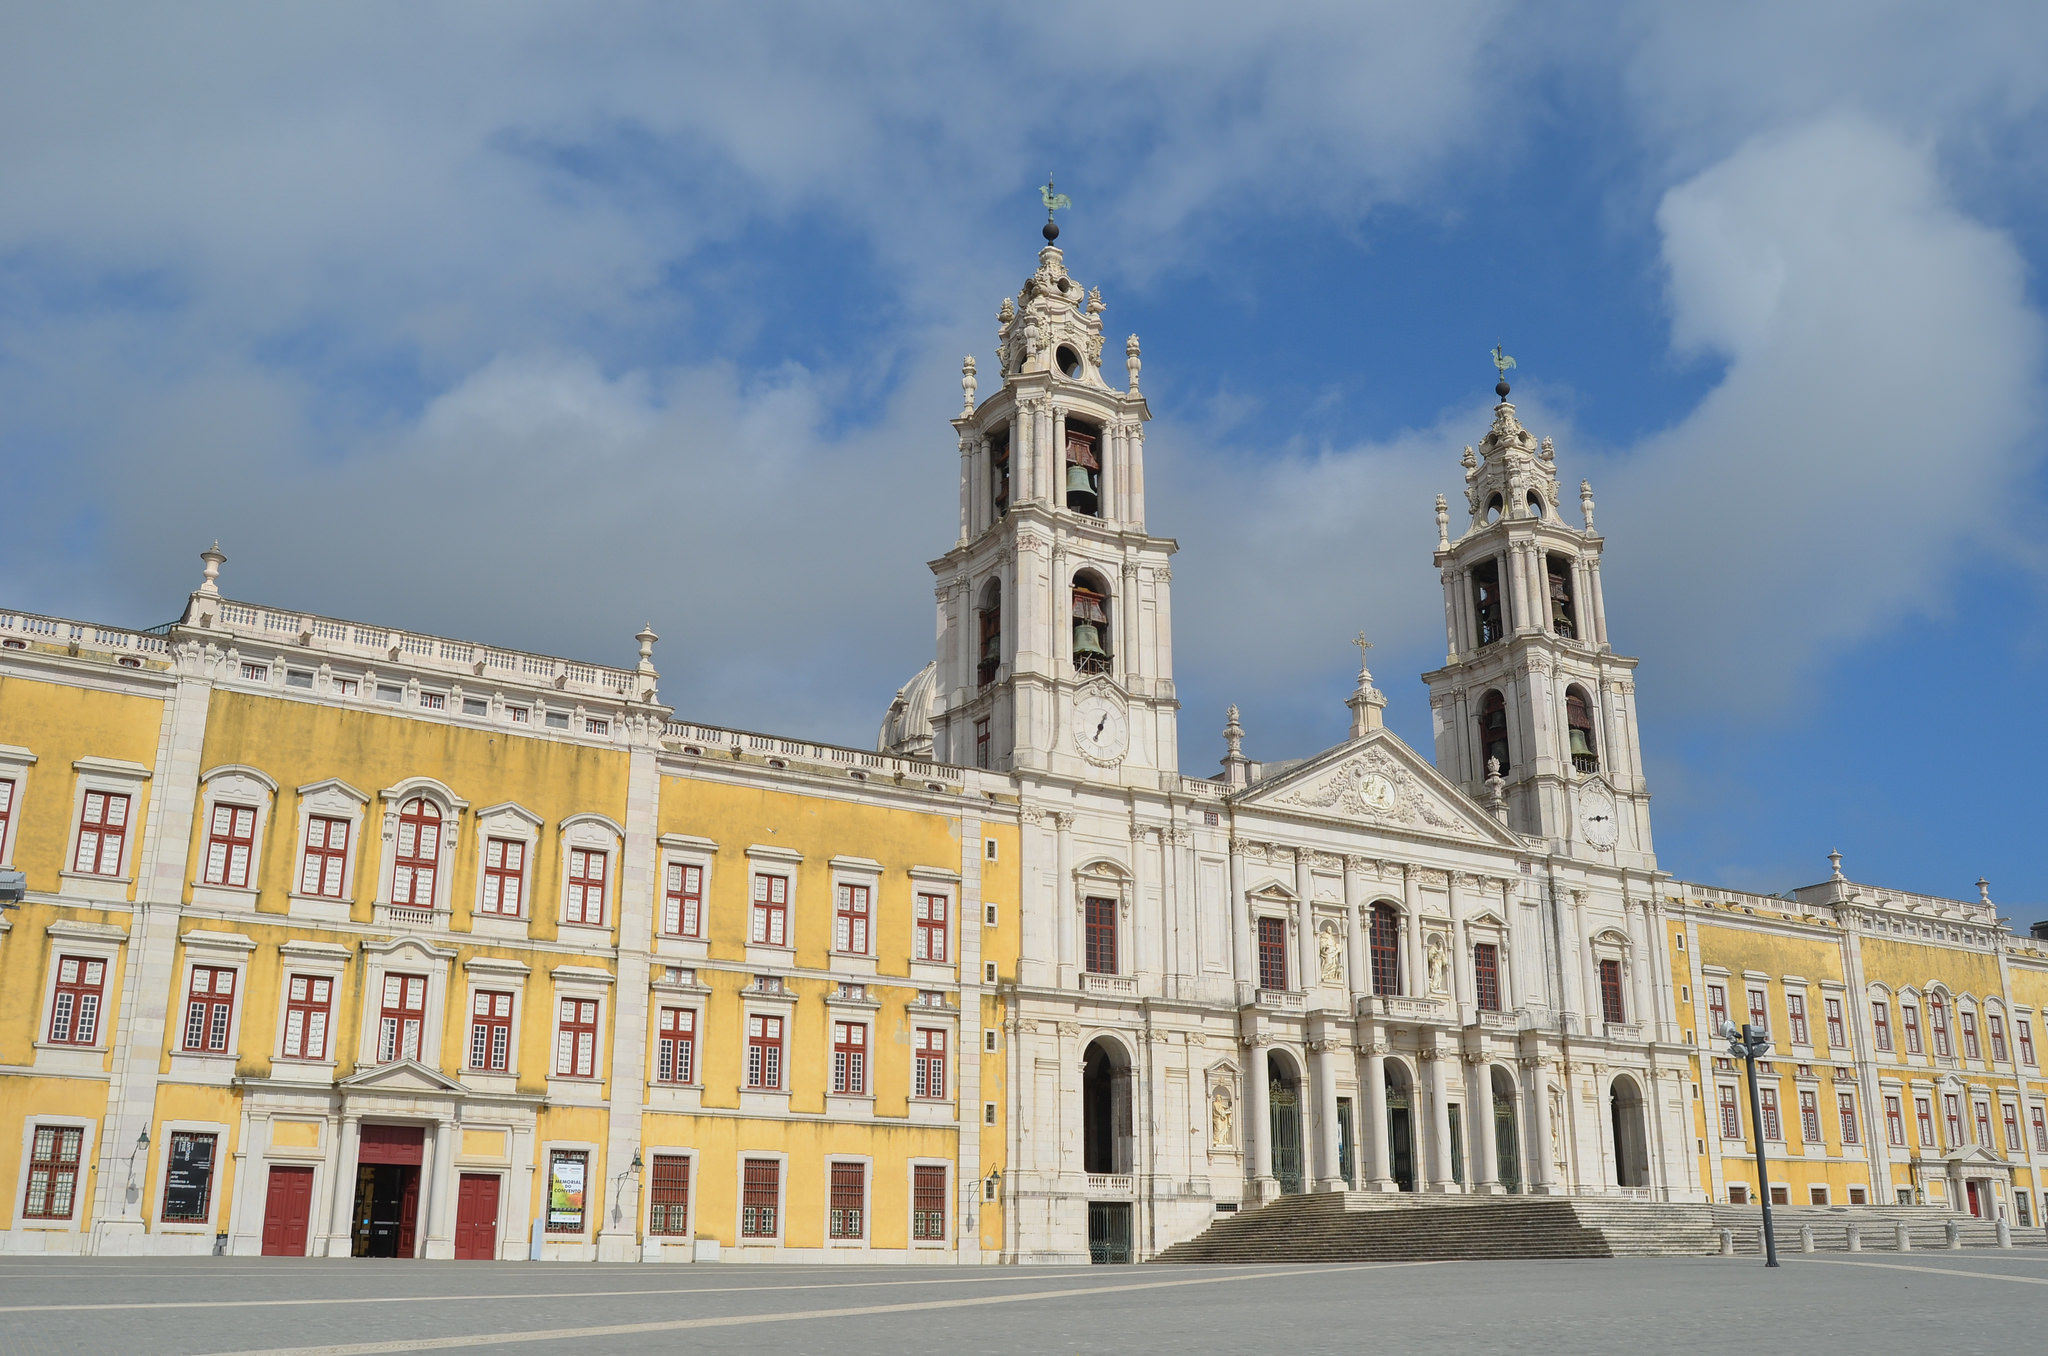 casafari metasearch Mafra property lisbon Ericeira real estate market mercado imobiliário